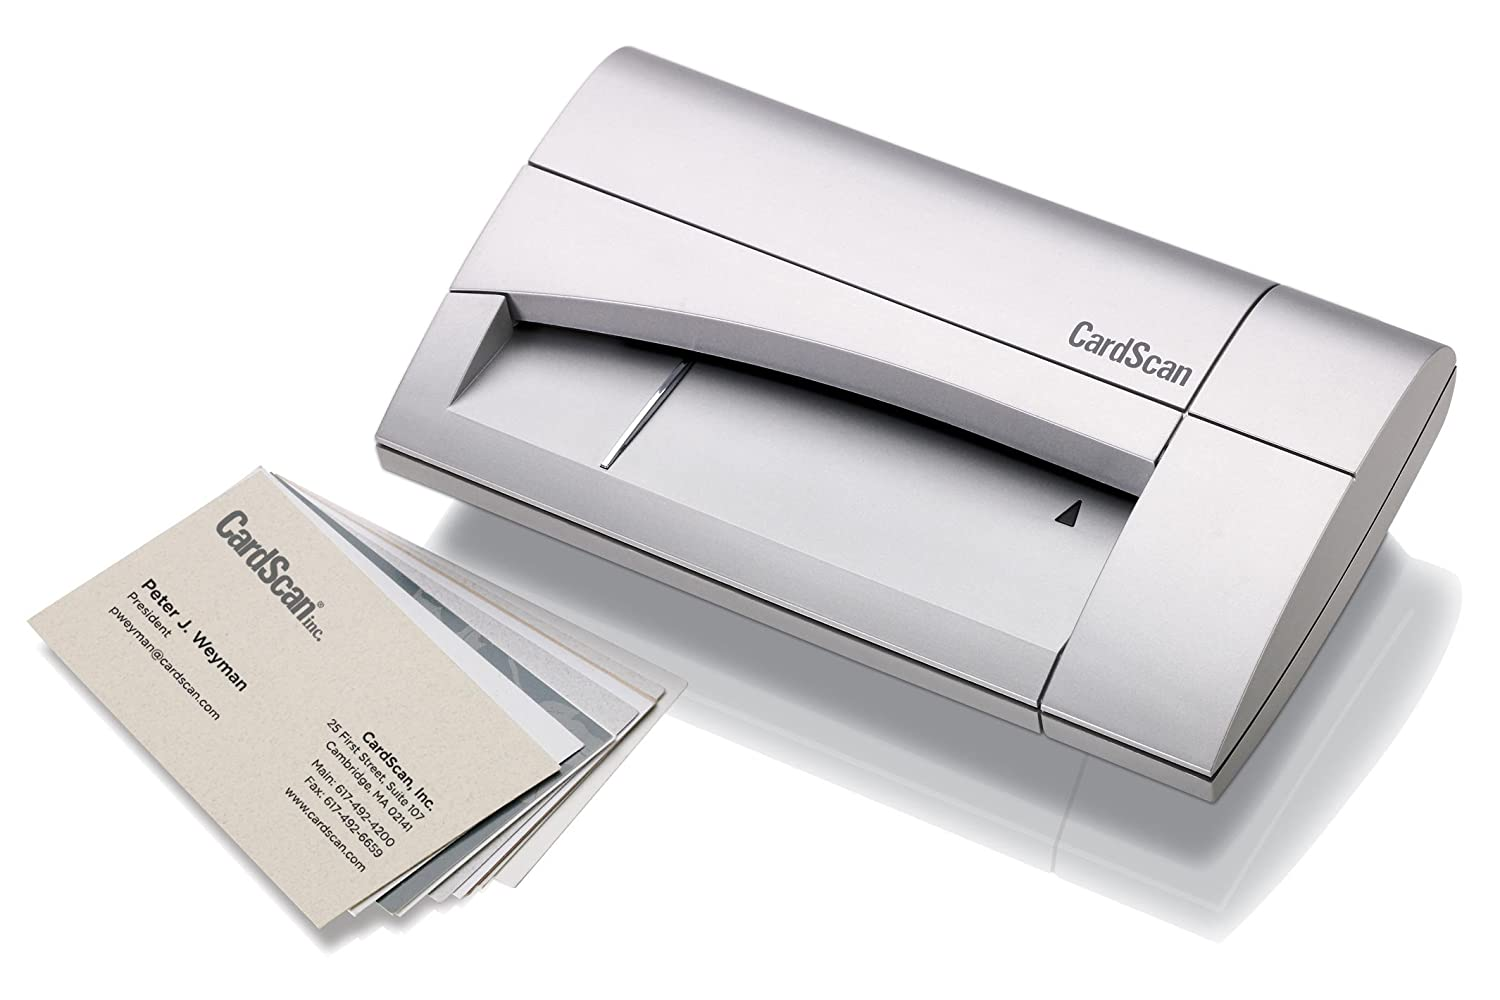 Top 10 Best Business Card Scanner Reviews 2017 2018 On Flipboard